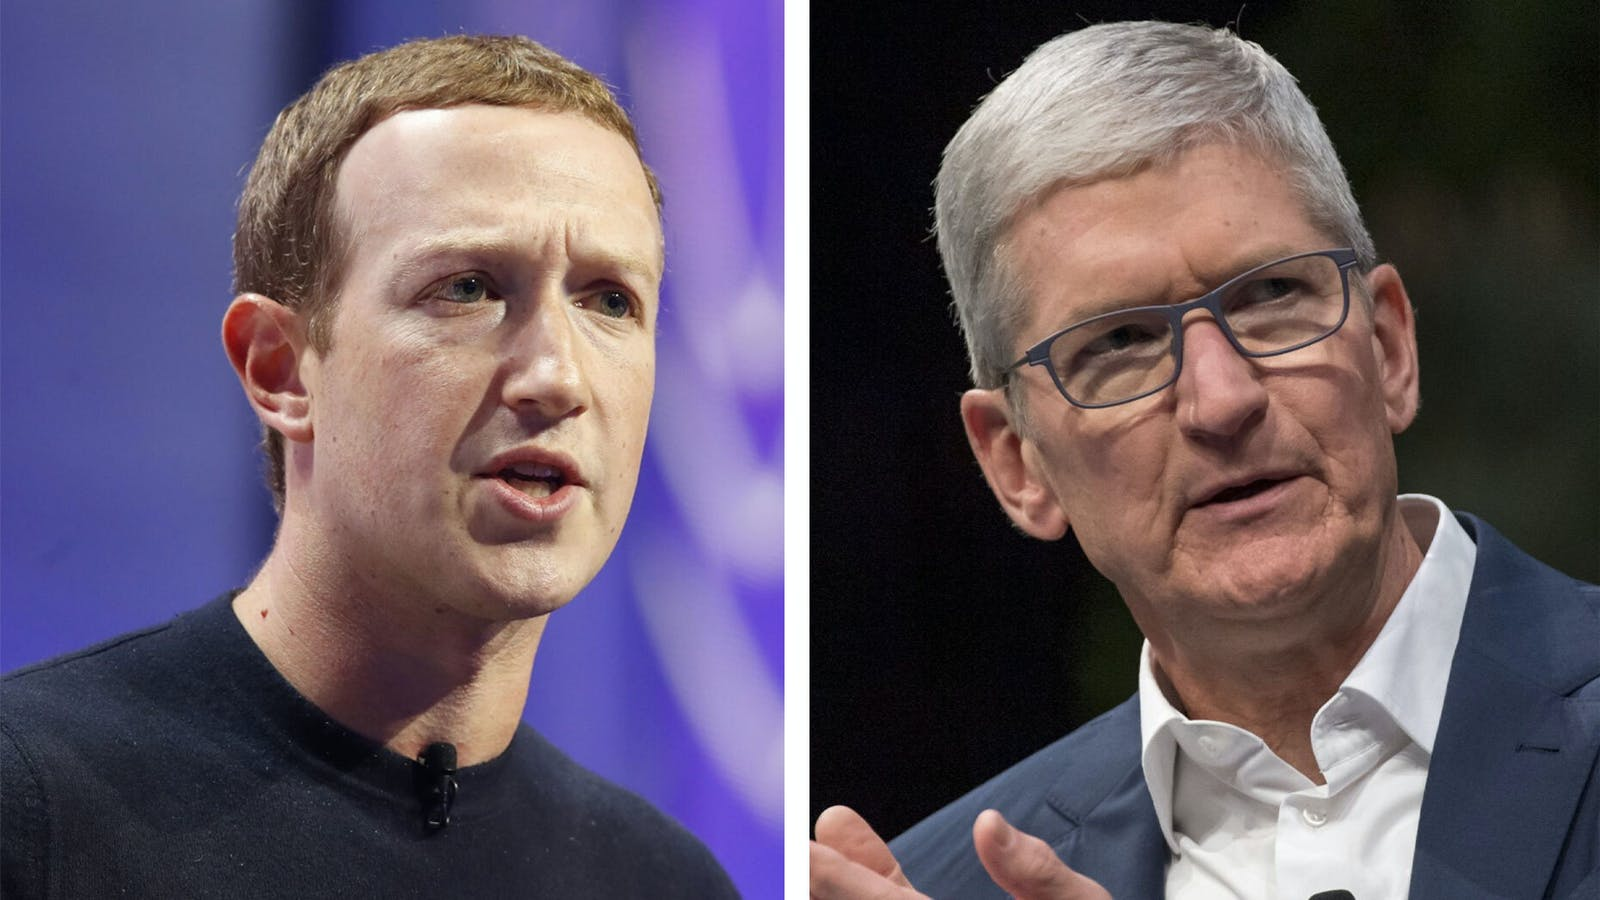 Facebook CEO Mark Zuckerberg (l) and Apple CEO Tim Cook (r). Photo: Bloomberg